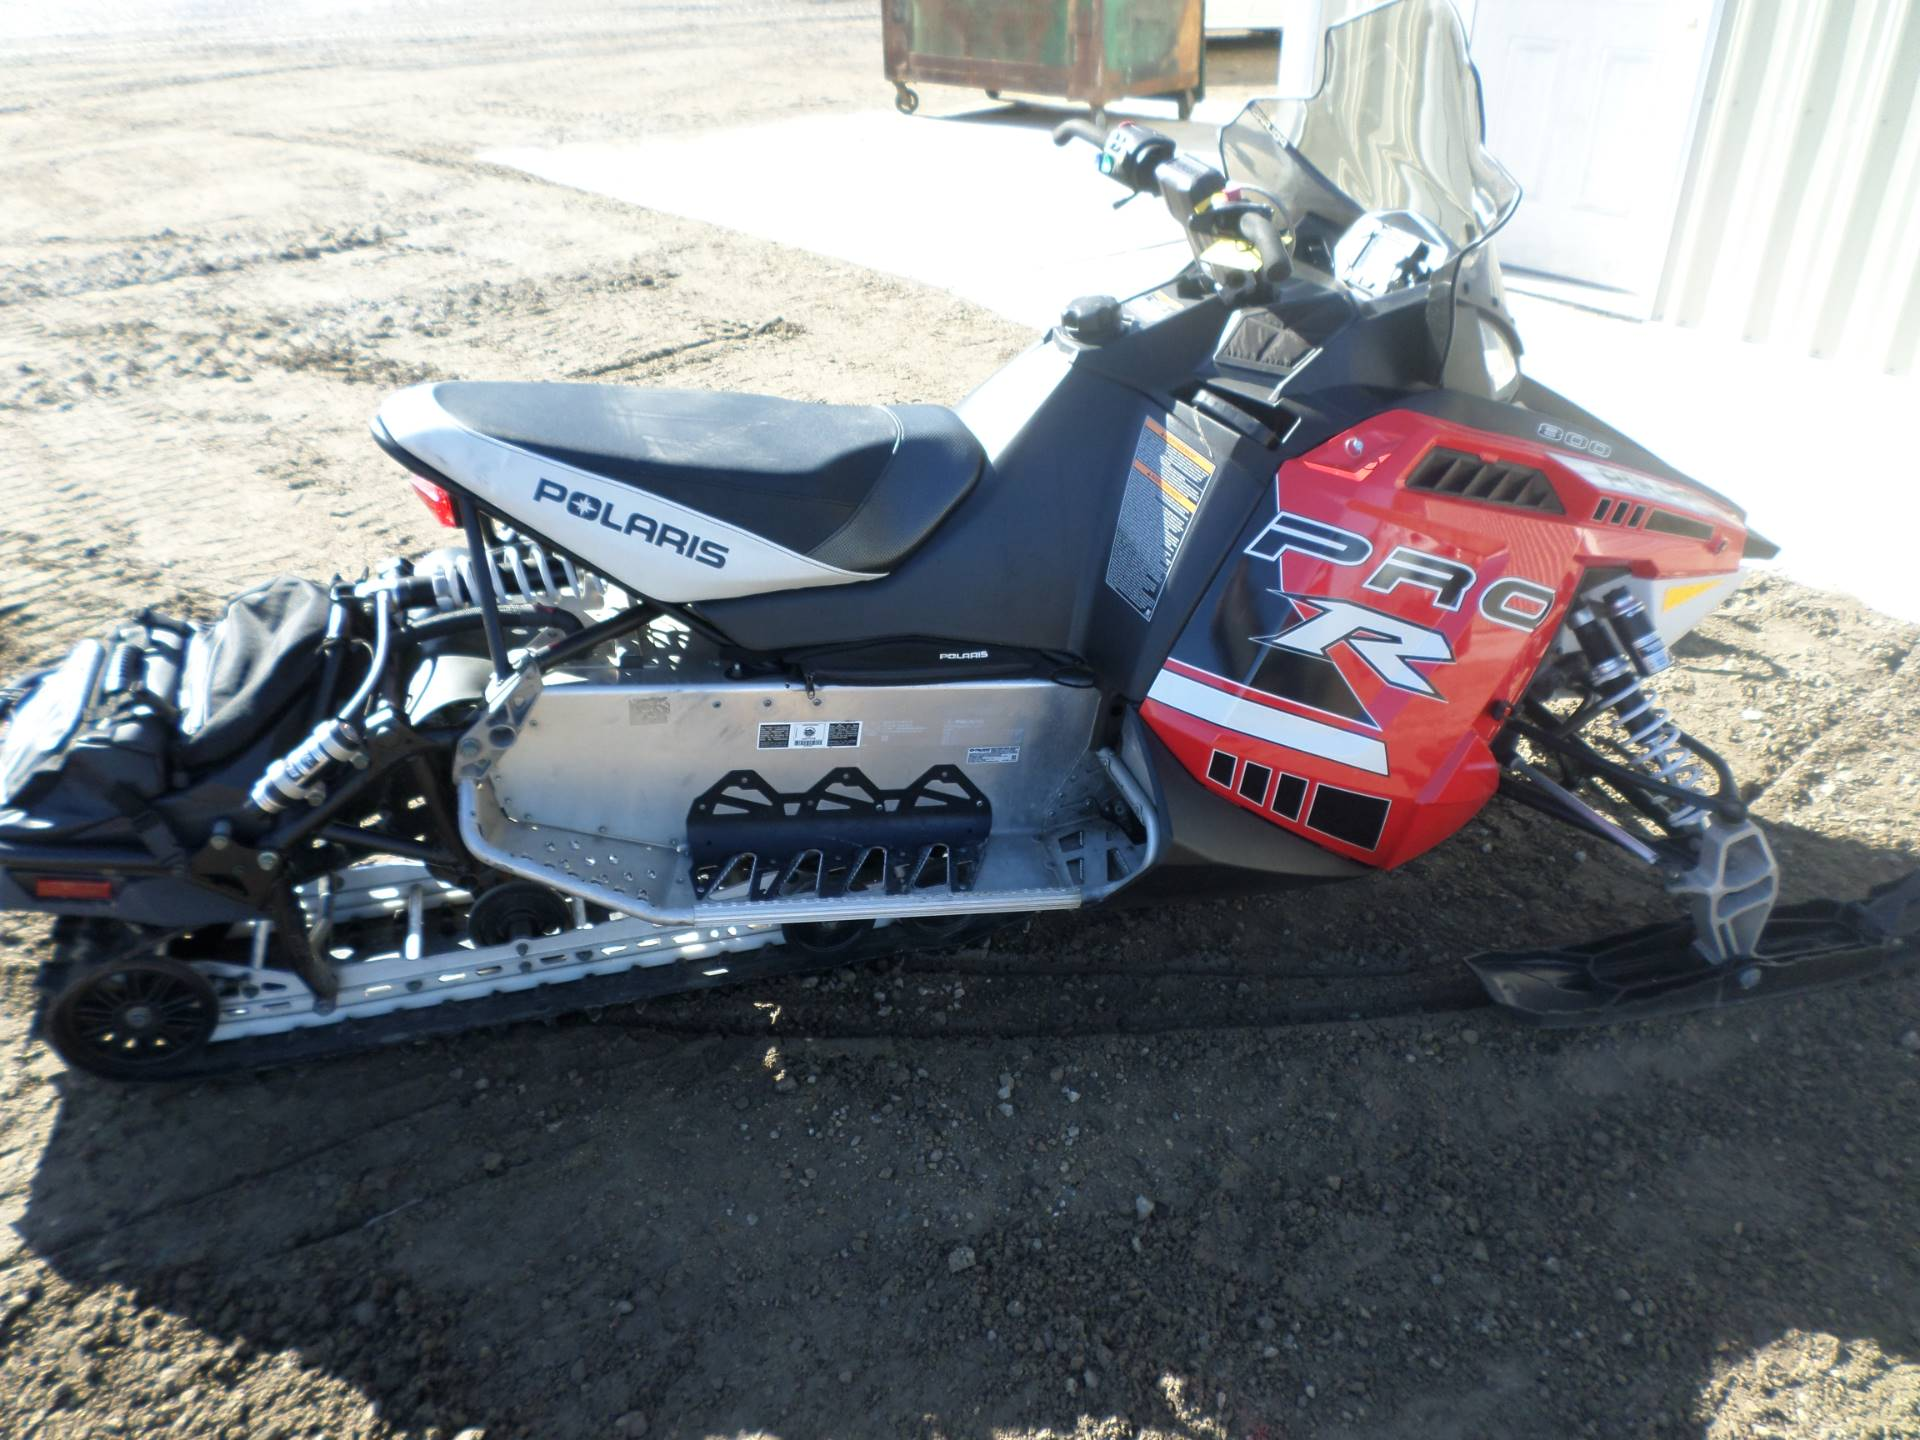 2014 Polaris 800 Rush® Pro-R LE in Lake Mills, Iowa